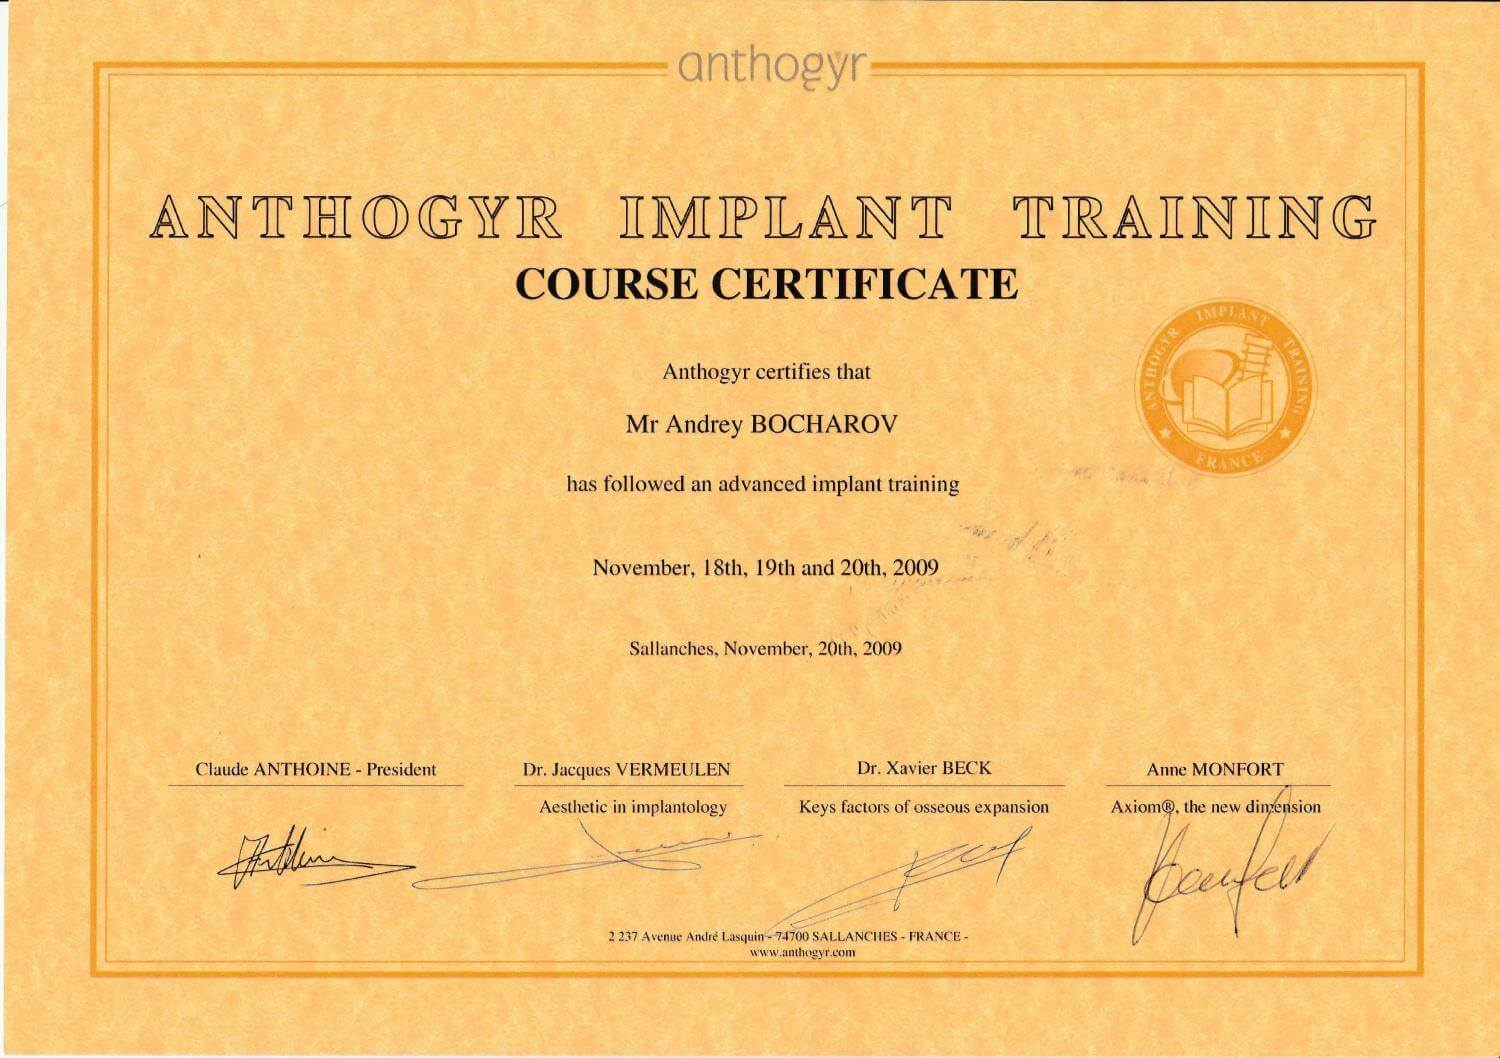 Anthogyr Implant Training